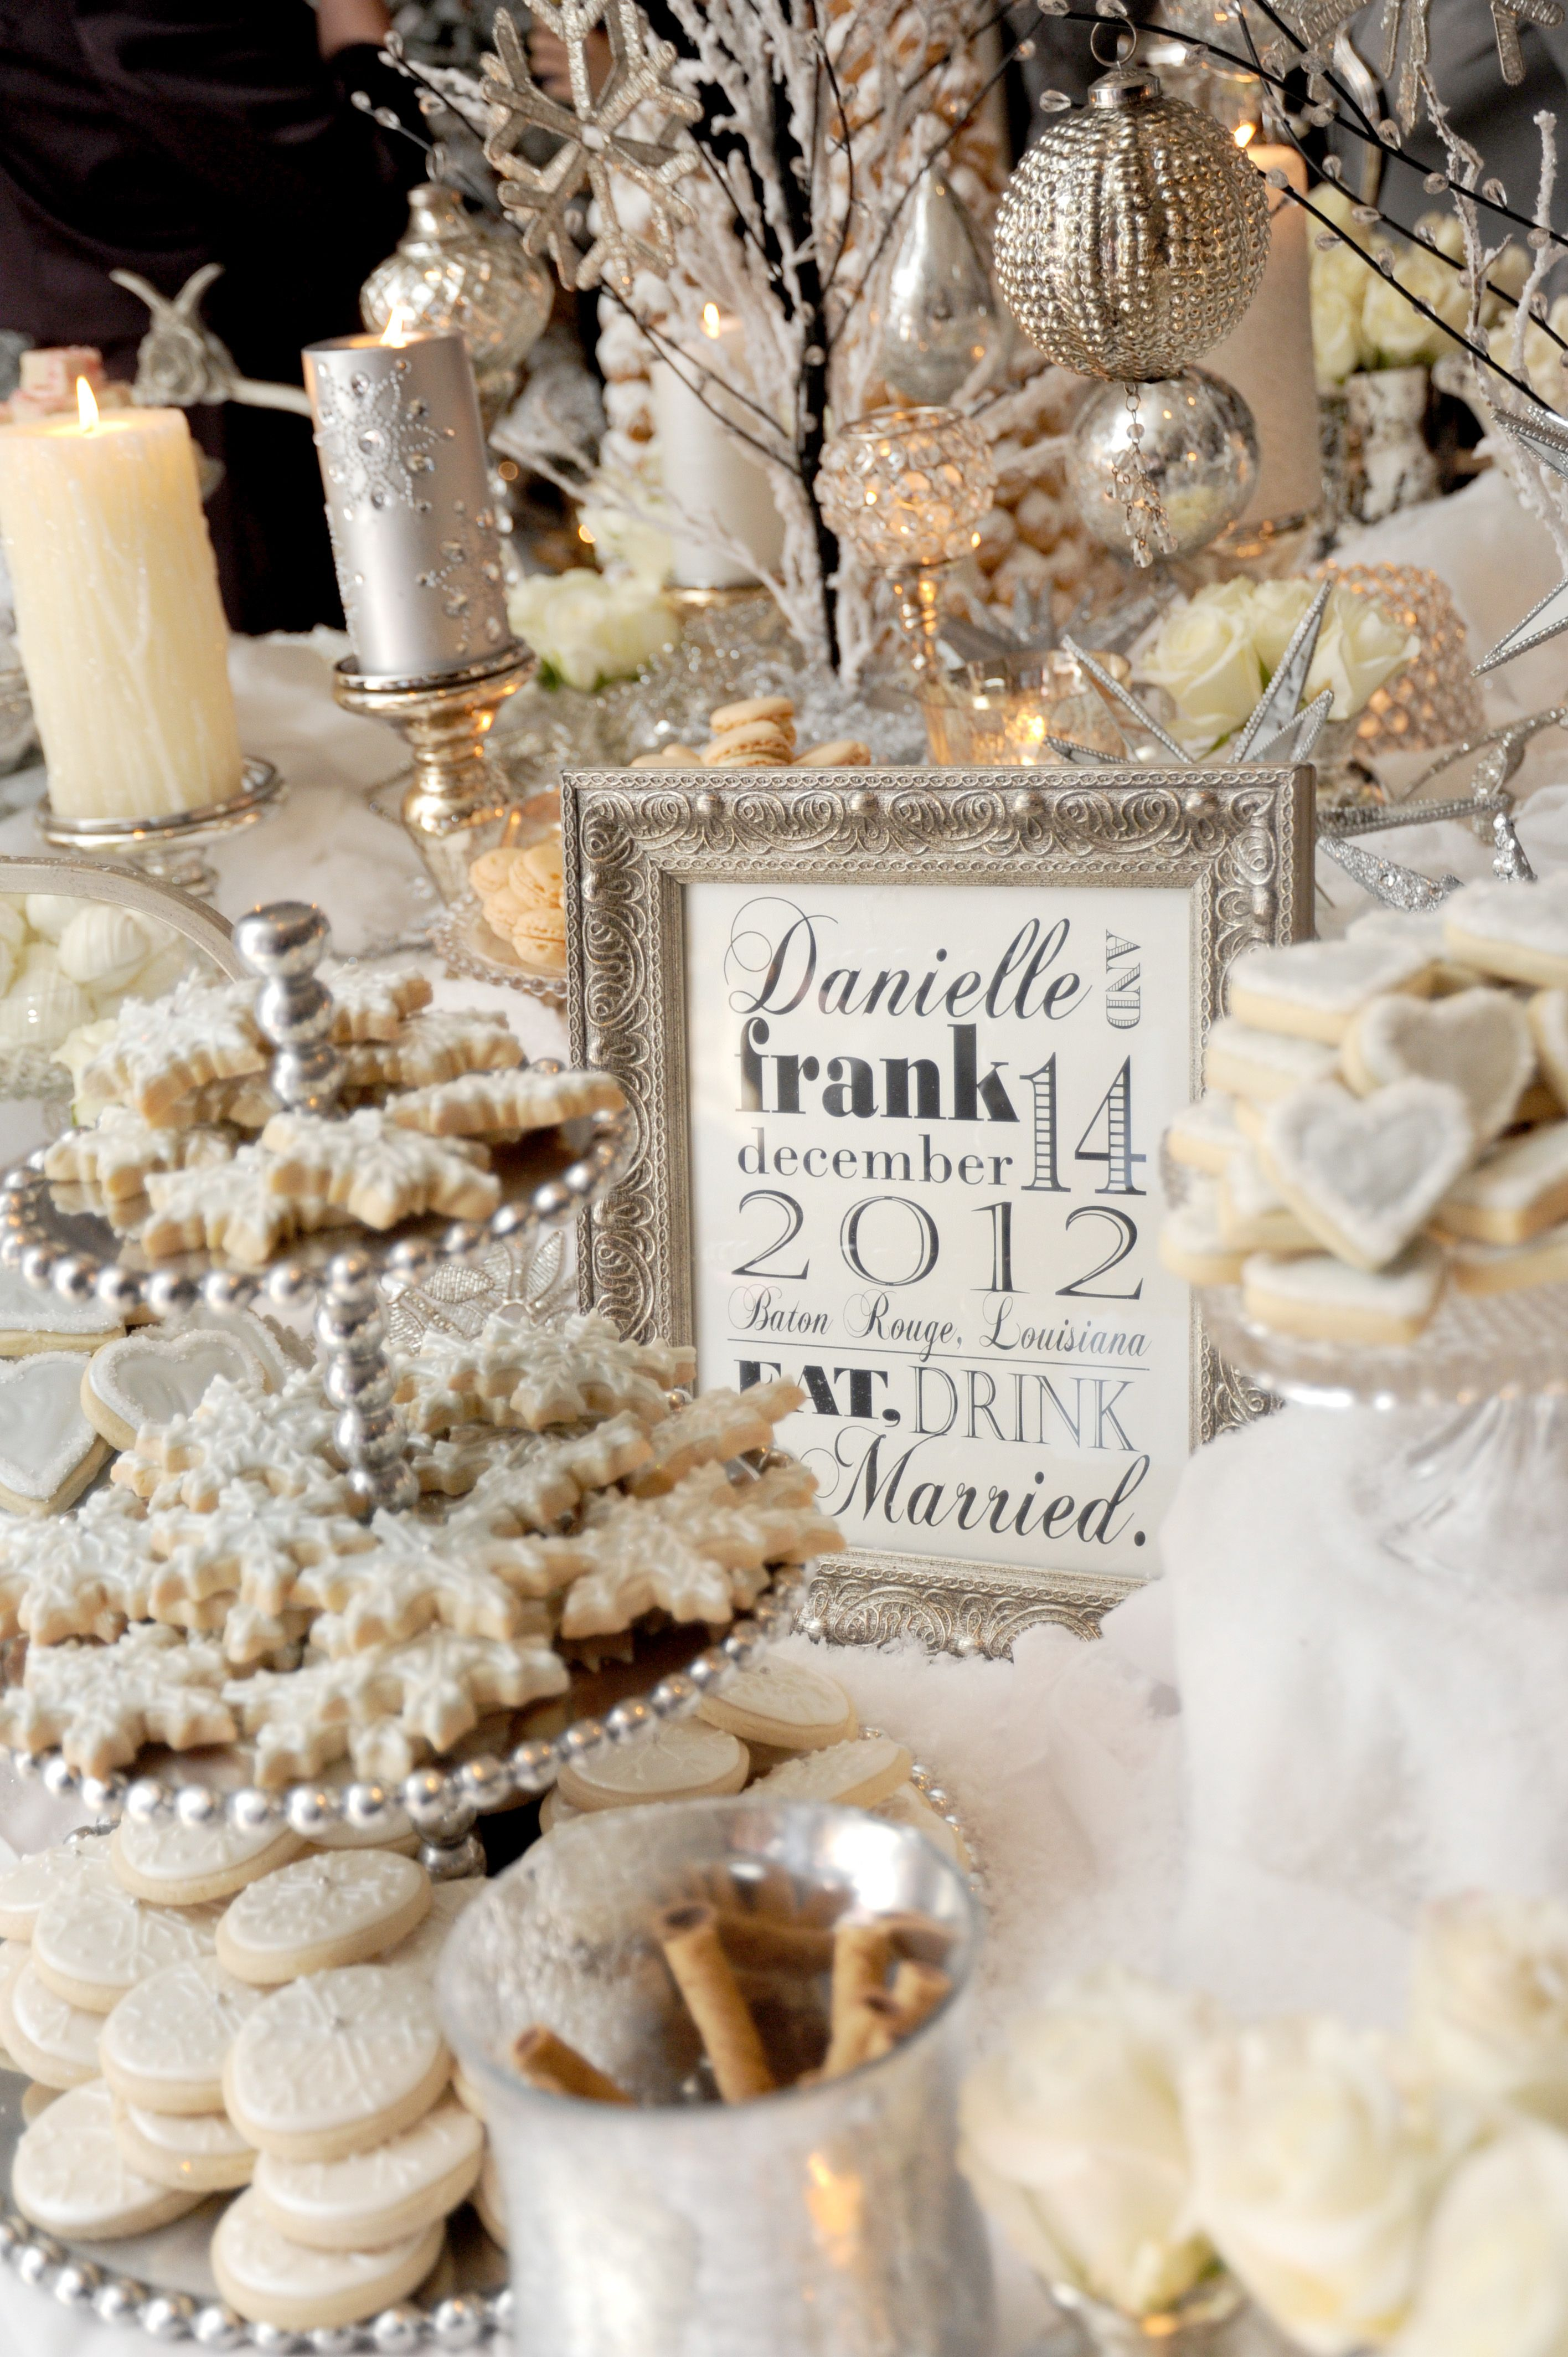 Winter Wonderland Christmas Wedding Ideas.29 Winter Wedding Ideas Center Piece Ideas Winter